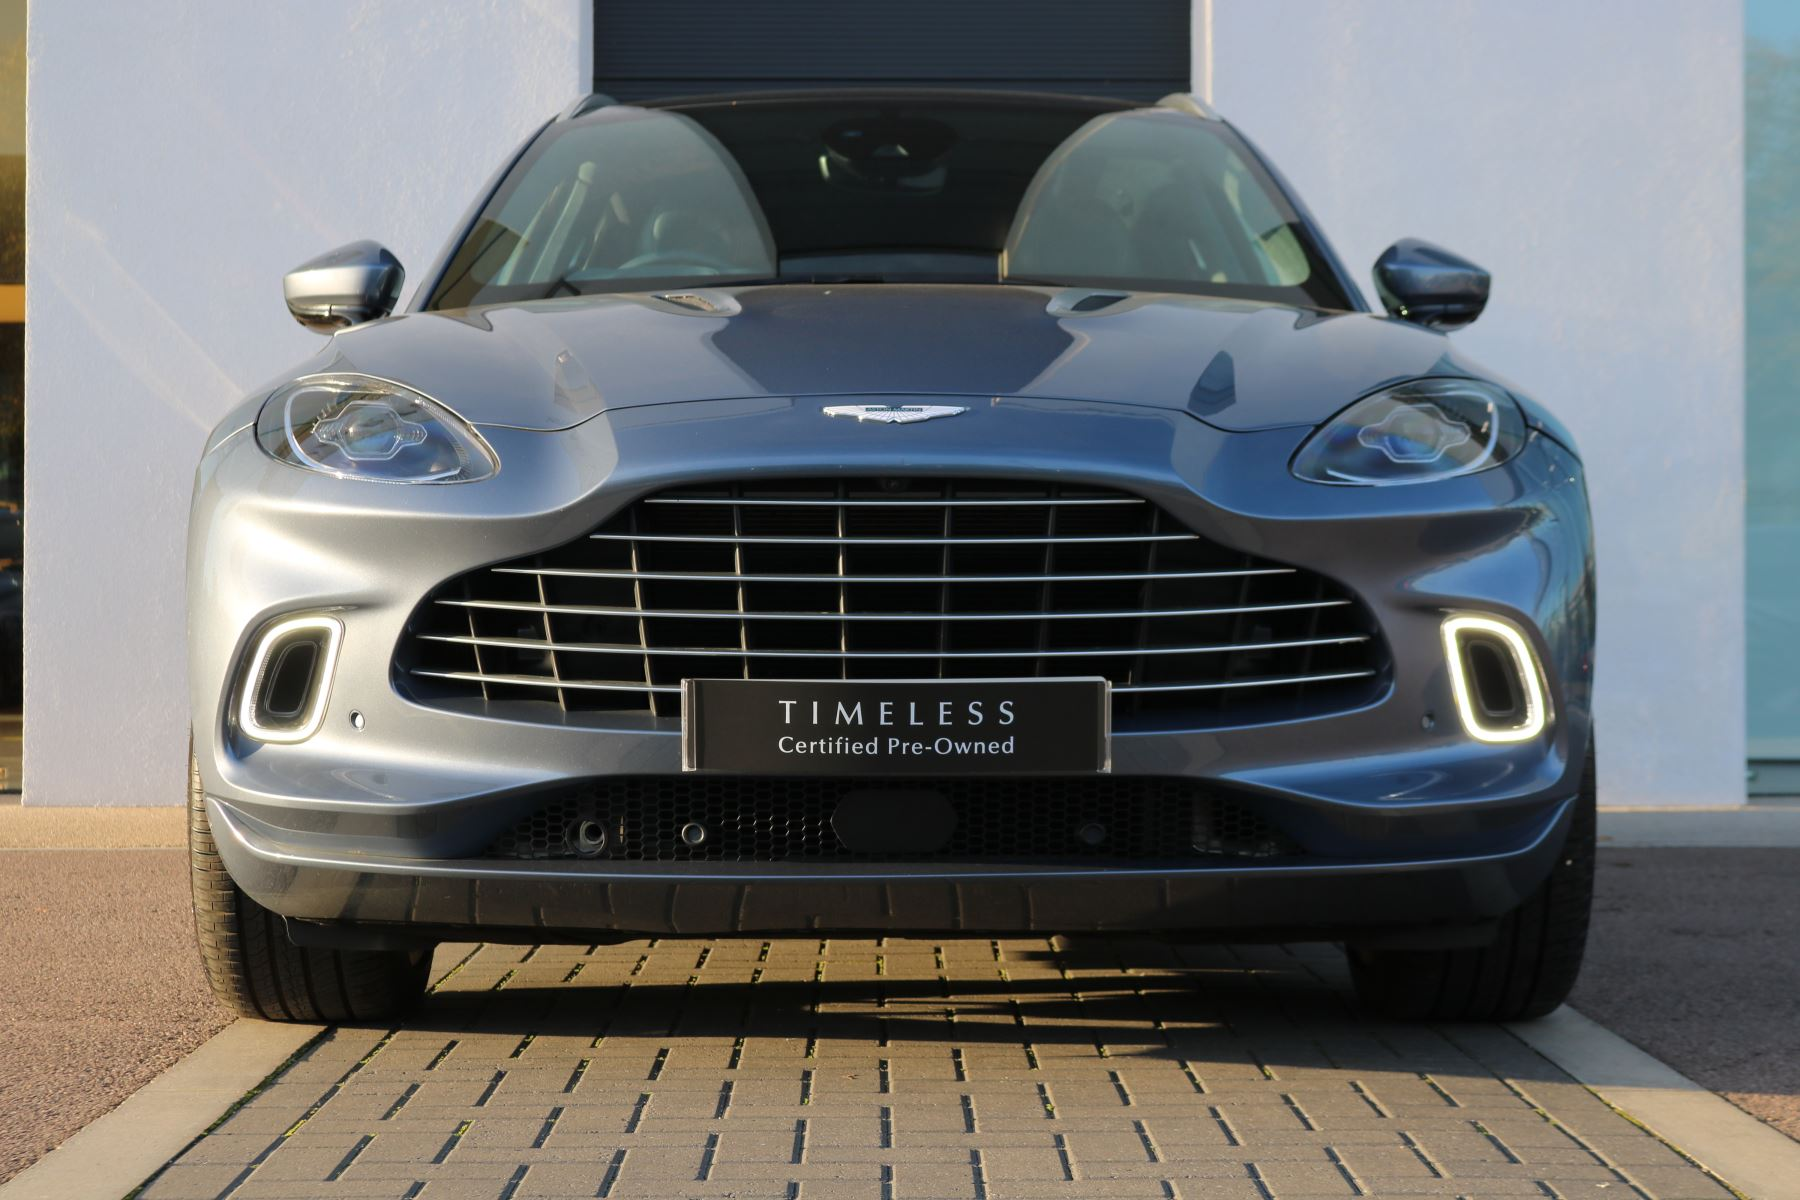 Aston Martin DBX V8 550 Touchtronic 1 of 500 Limited Edition Low Mileage  4.0 Automatic 5 door Estate (2020)